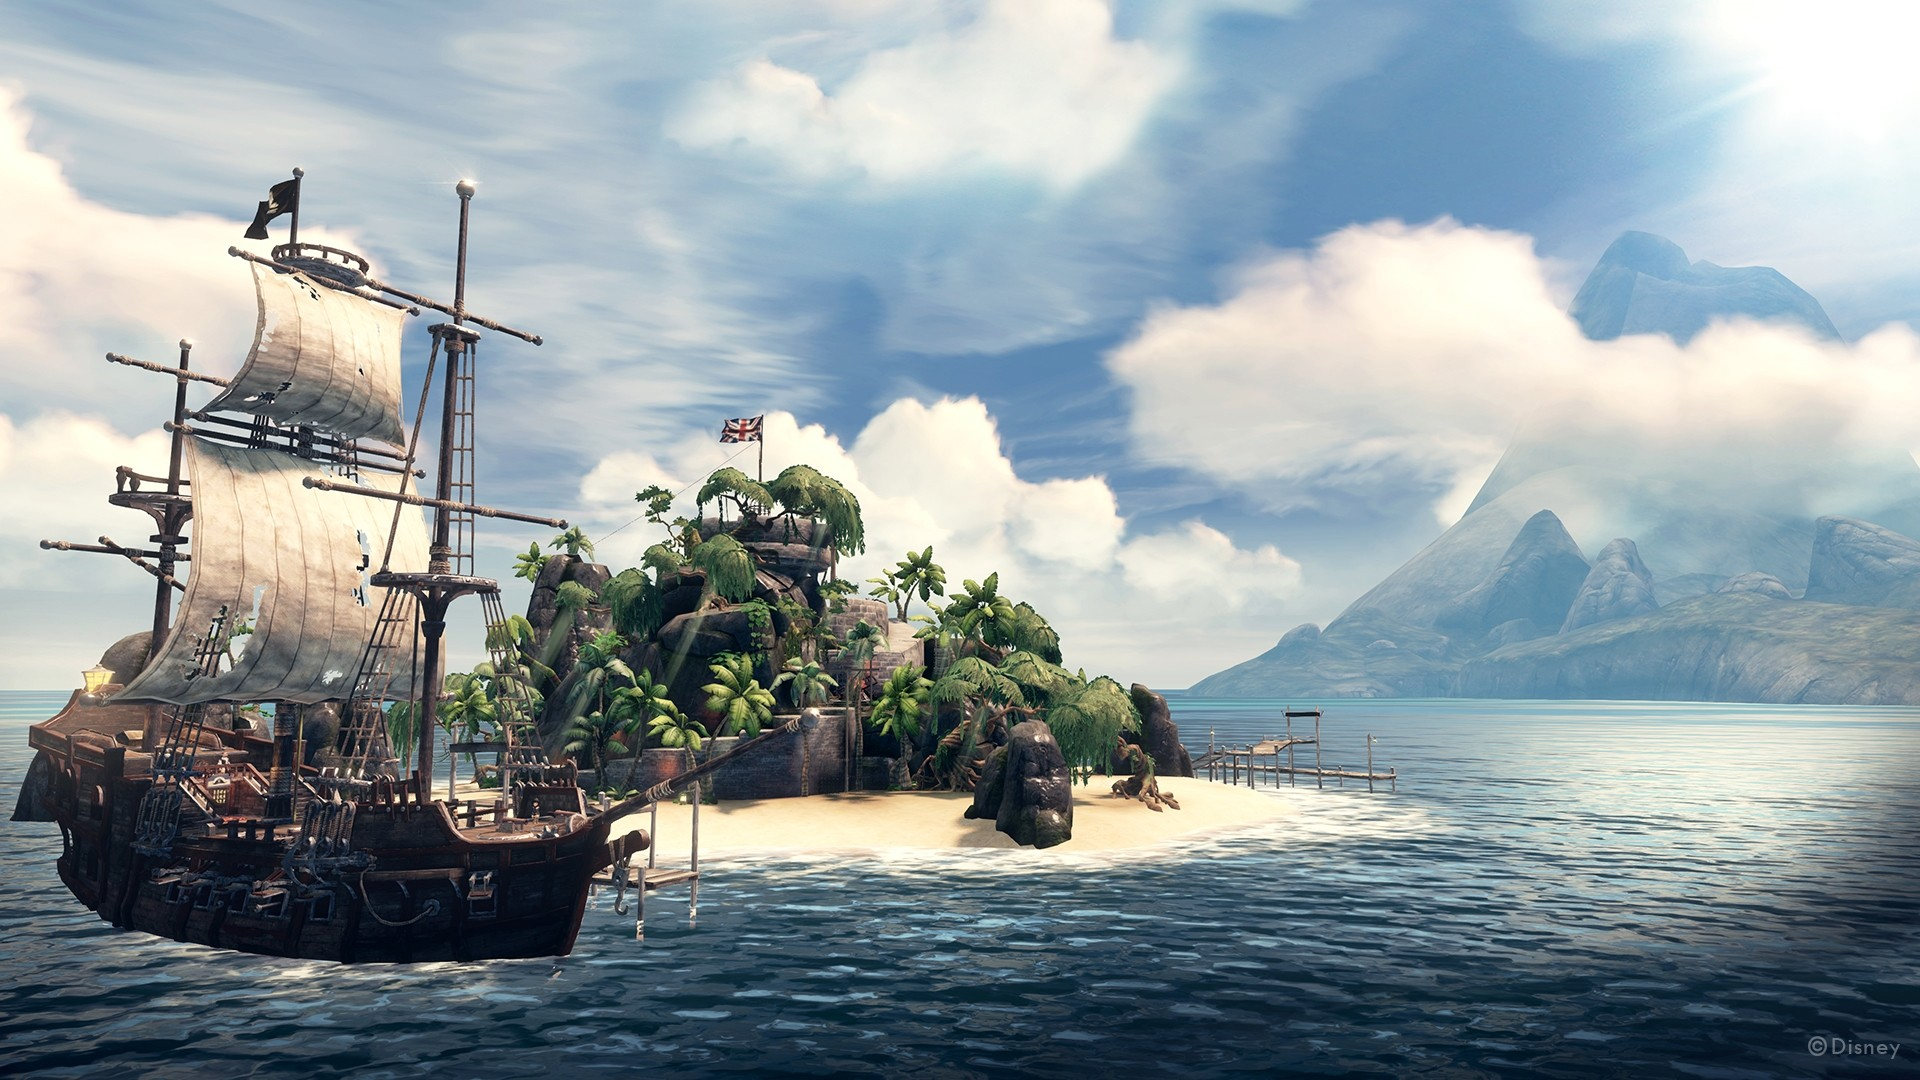 Pirate Wallpaper Picture hd